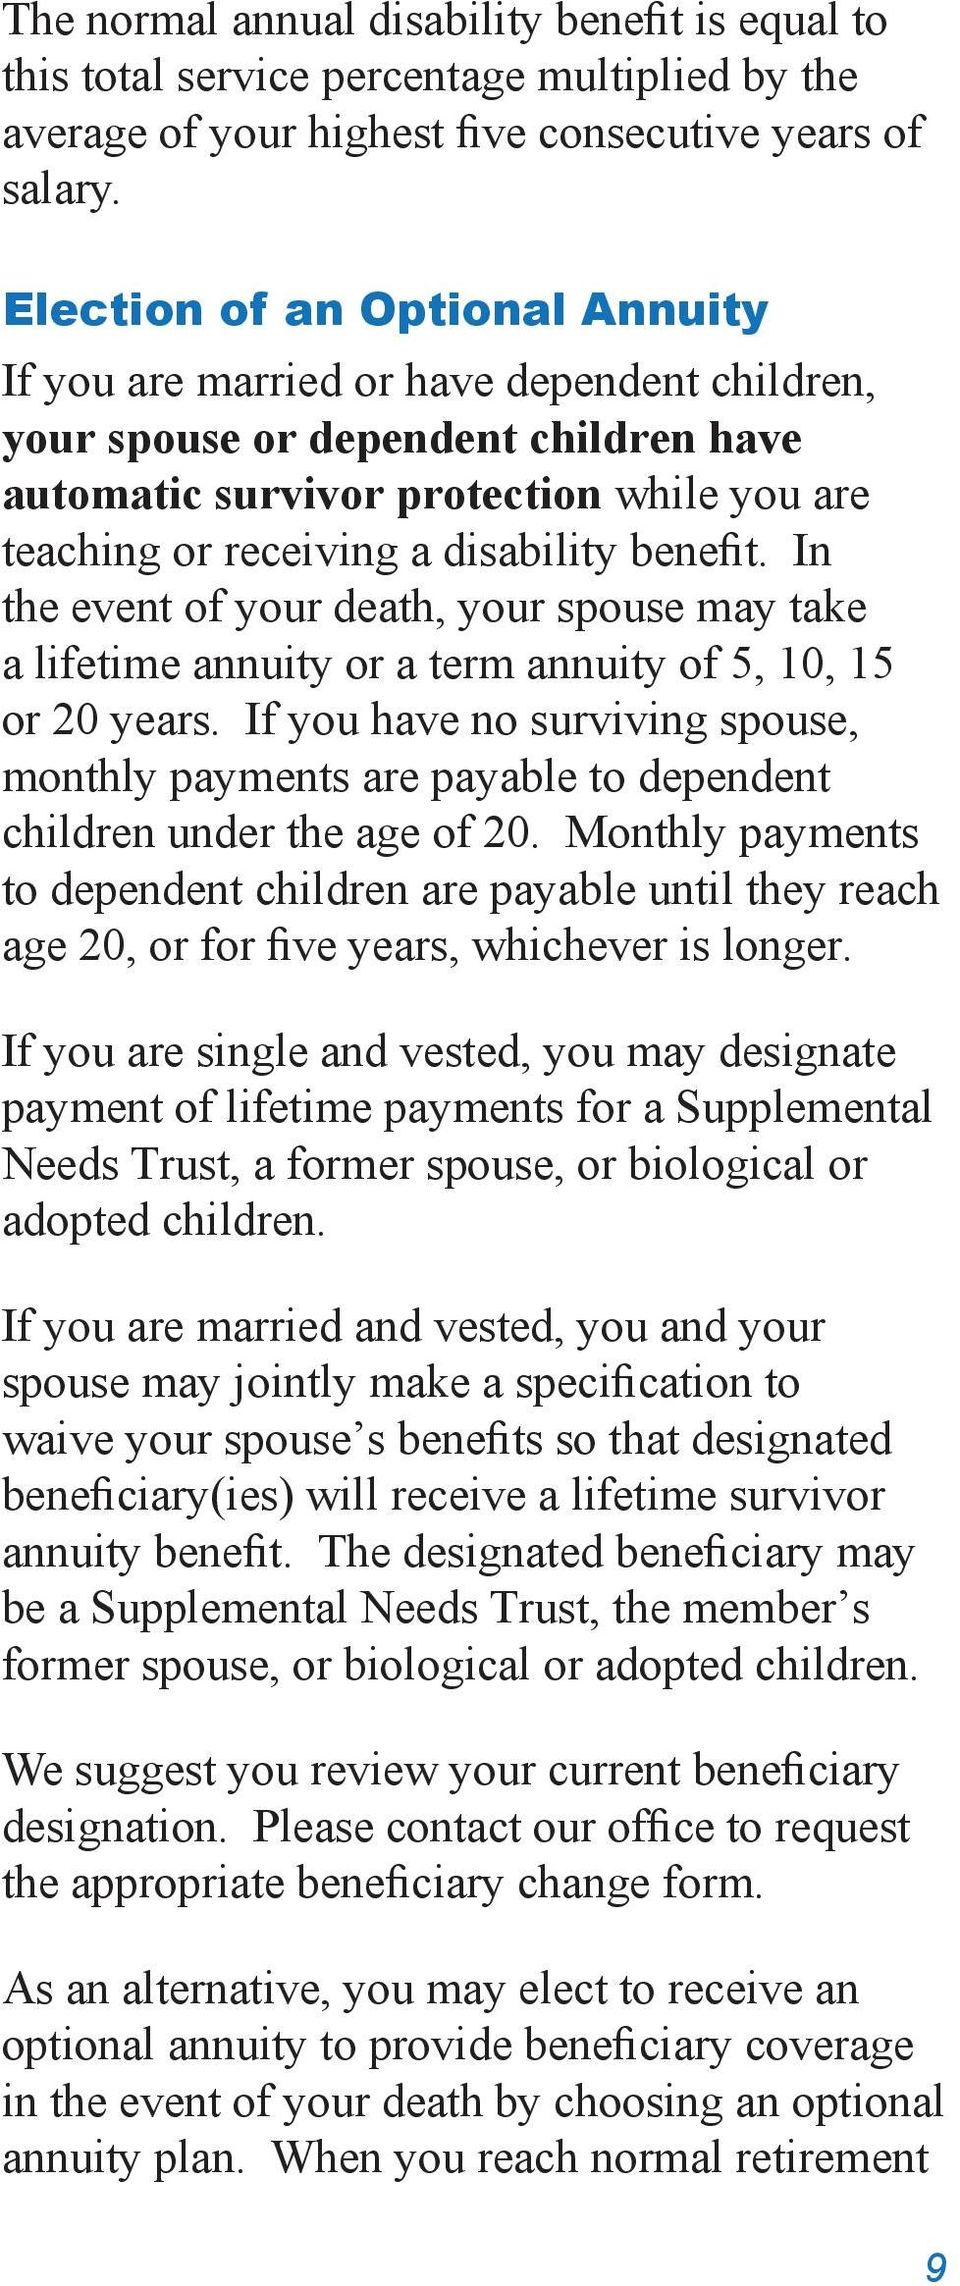 benefit. In the event of your death, your spouse may take a lifetime annuity or a term annuity of 5, 10, 15 or 20 years.